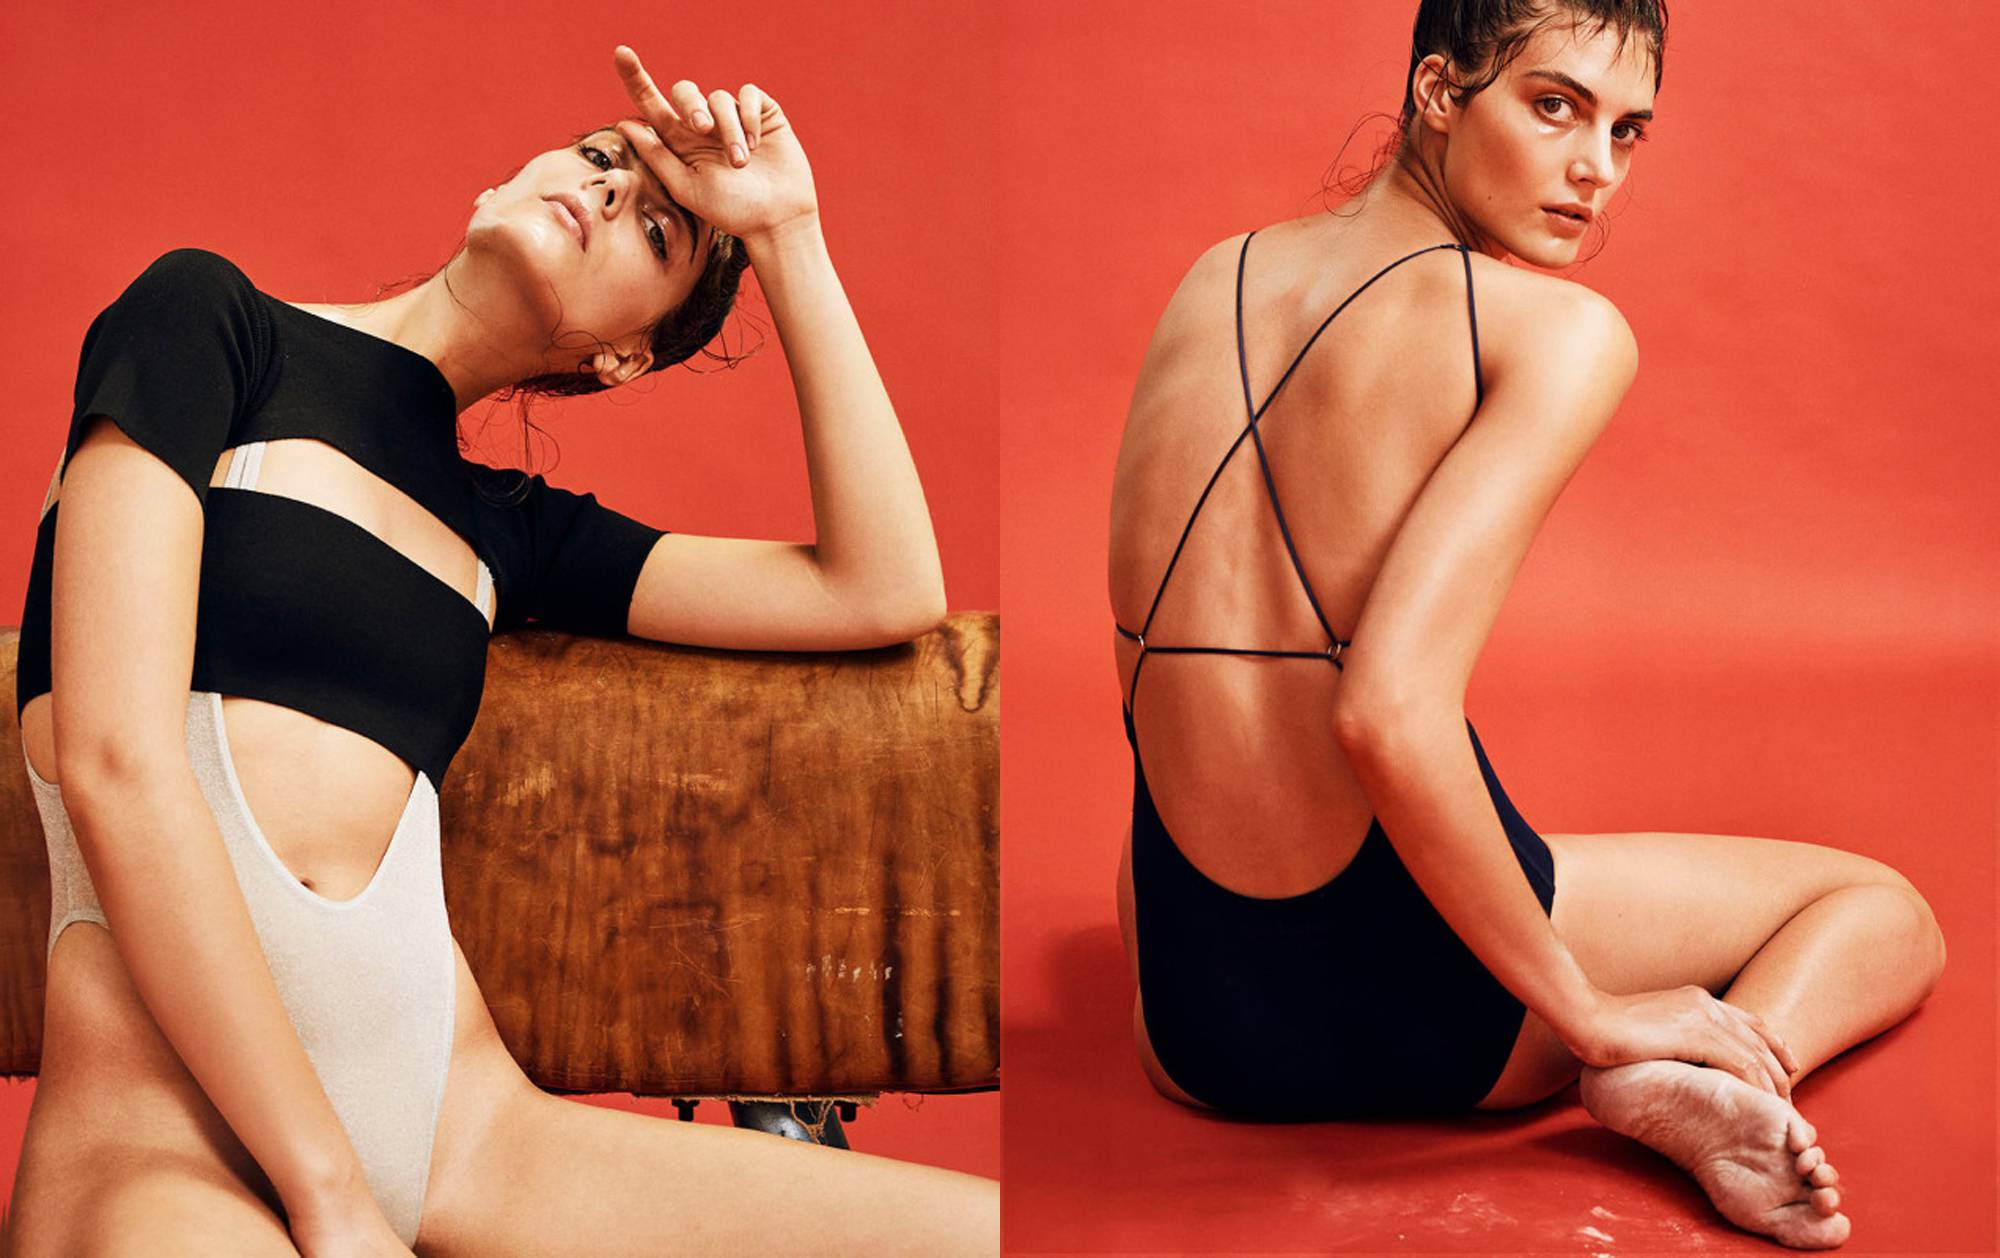 marie-claire-france-yesonfashion-com-01